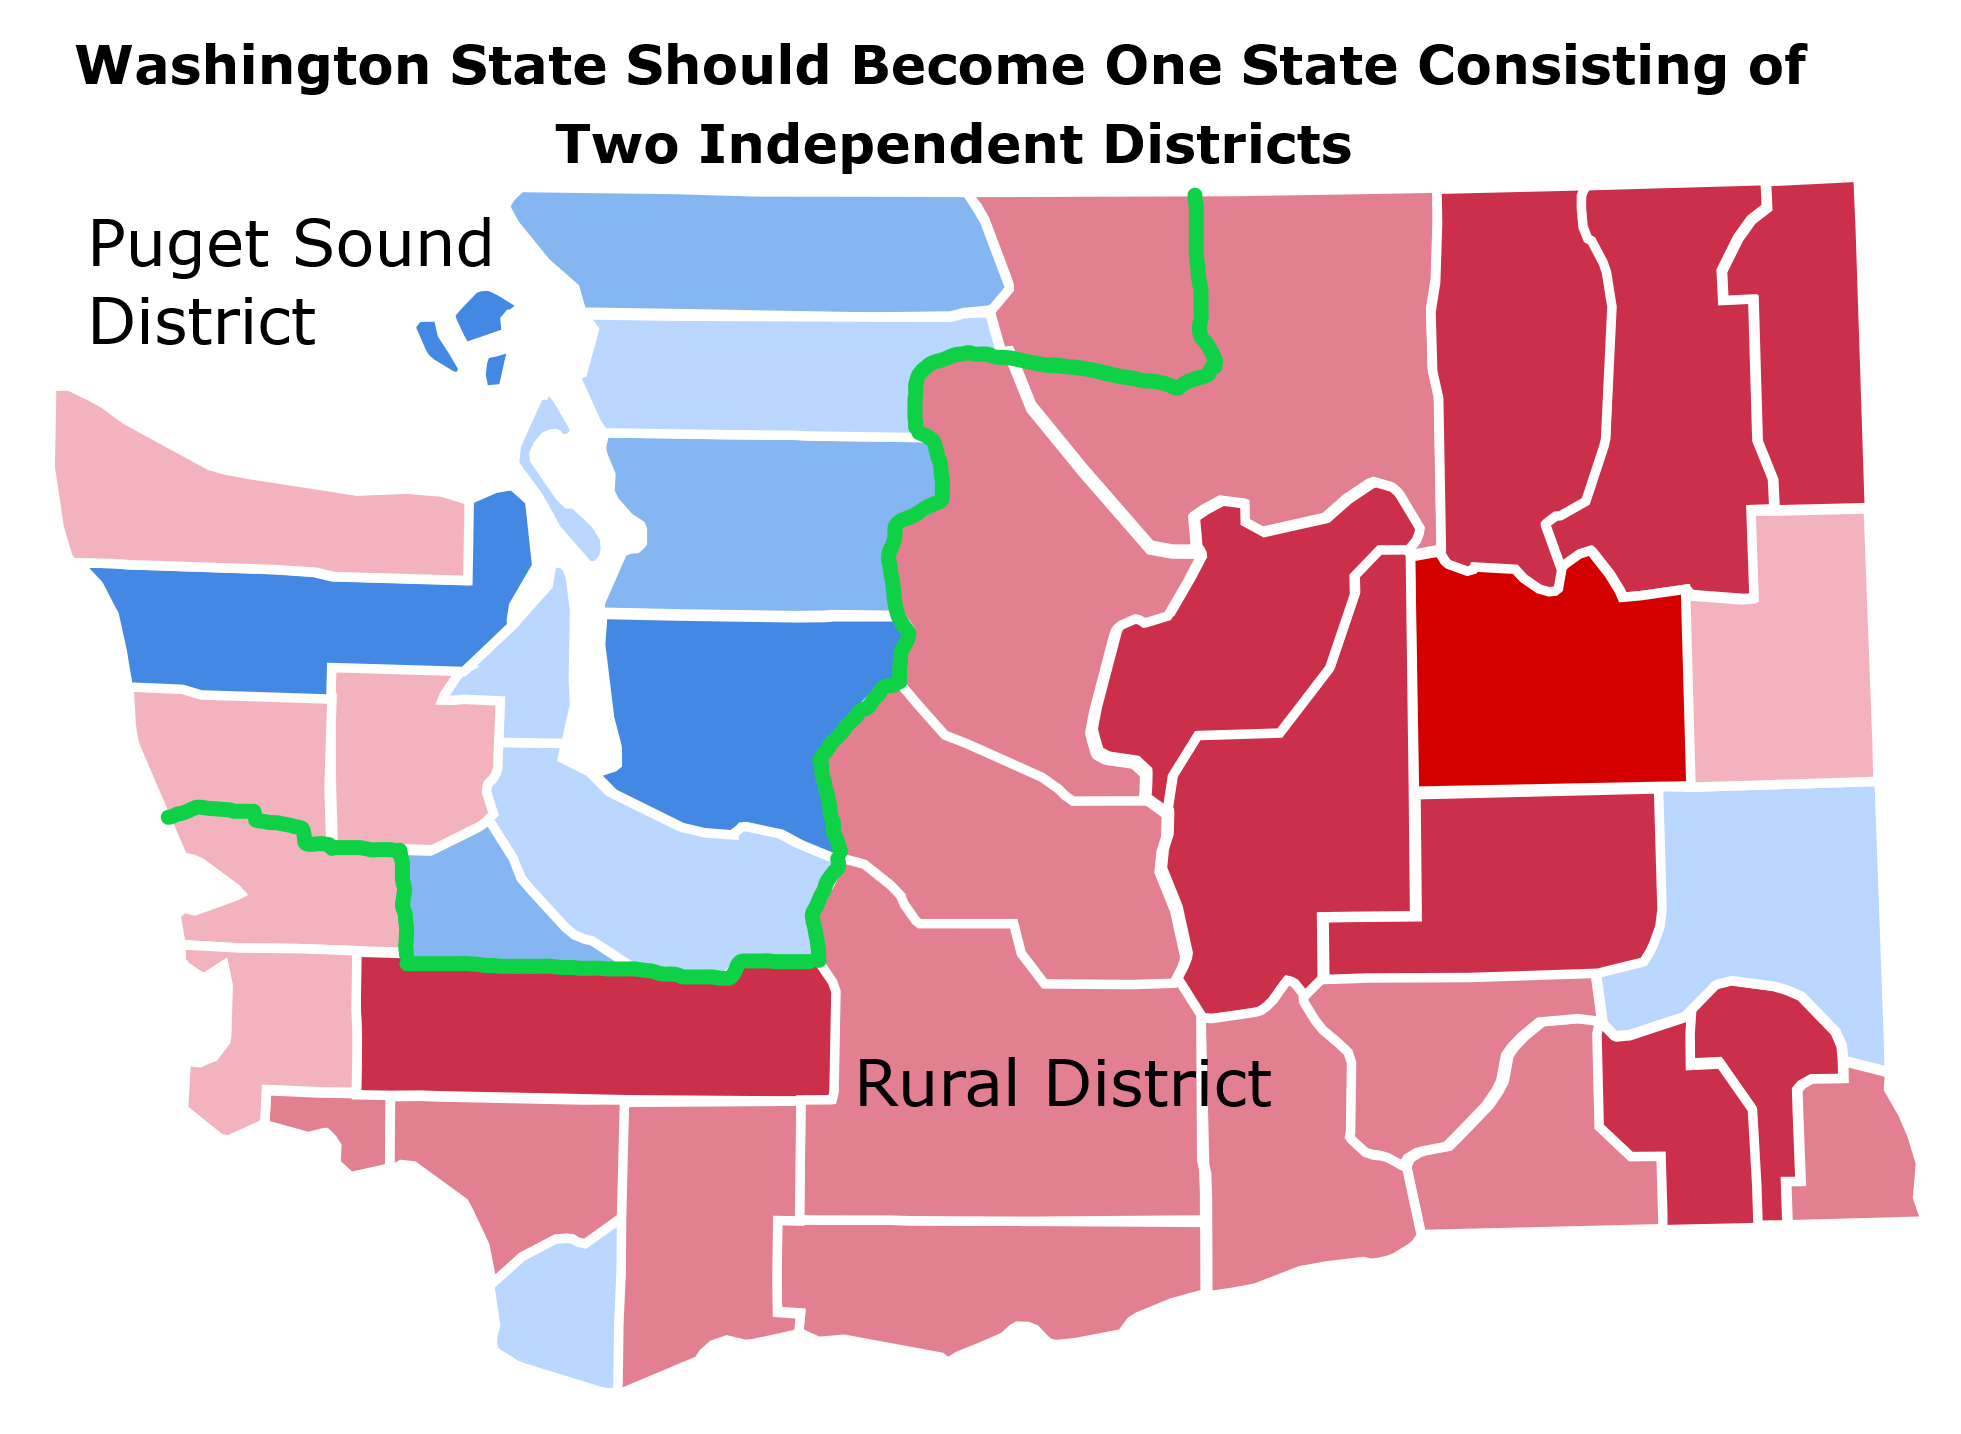 Washington State Should Become One State Consisting of Two Totally Independent Districts